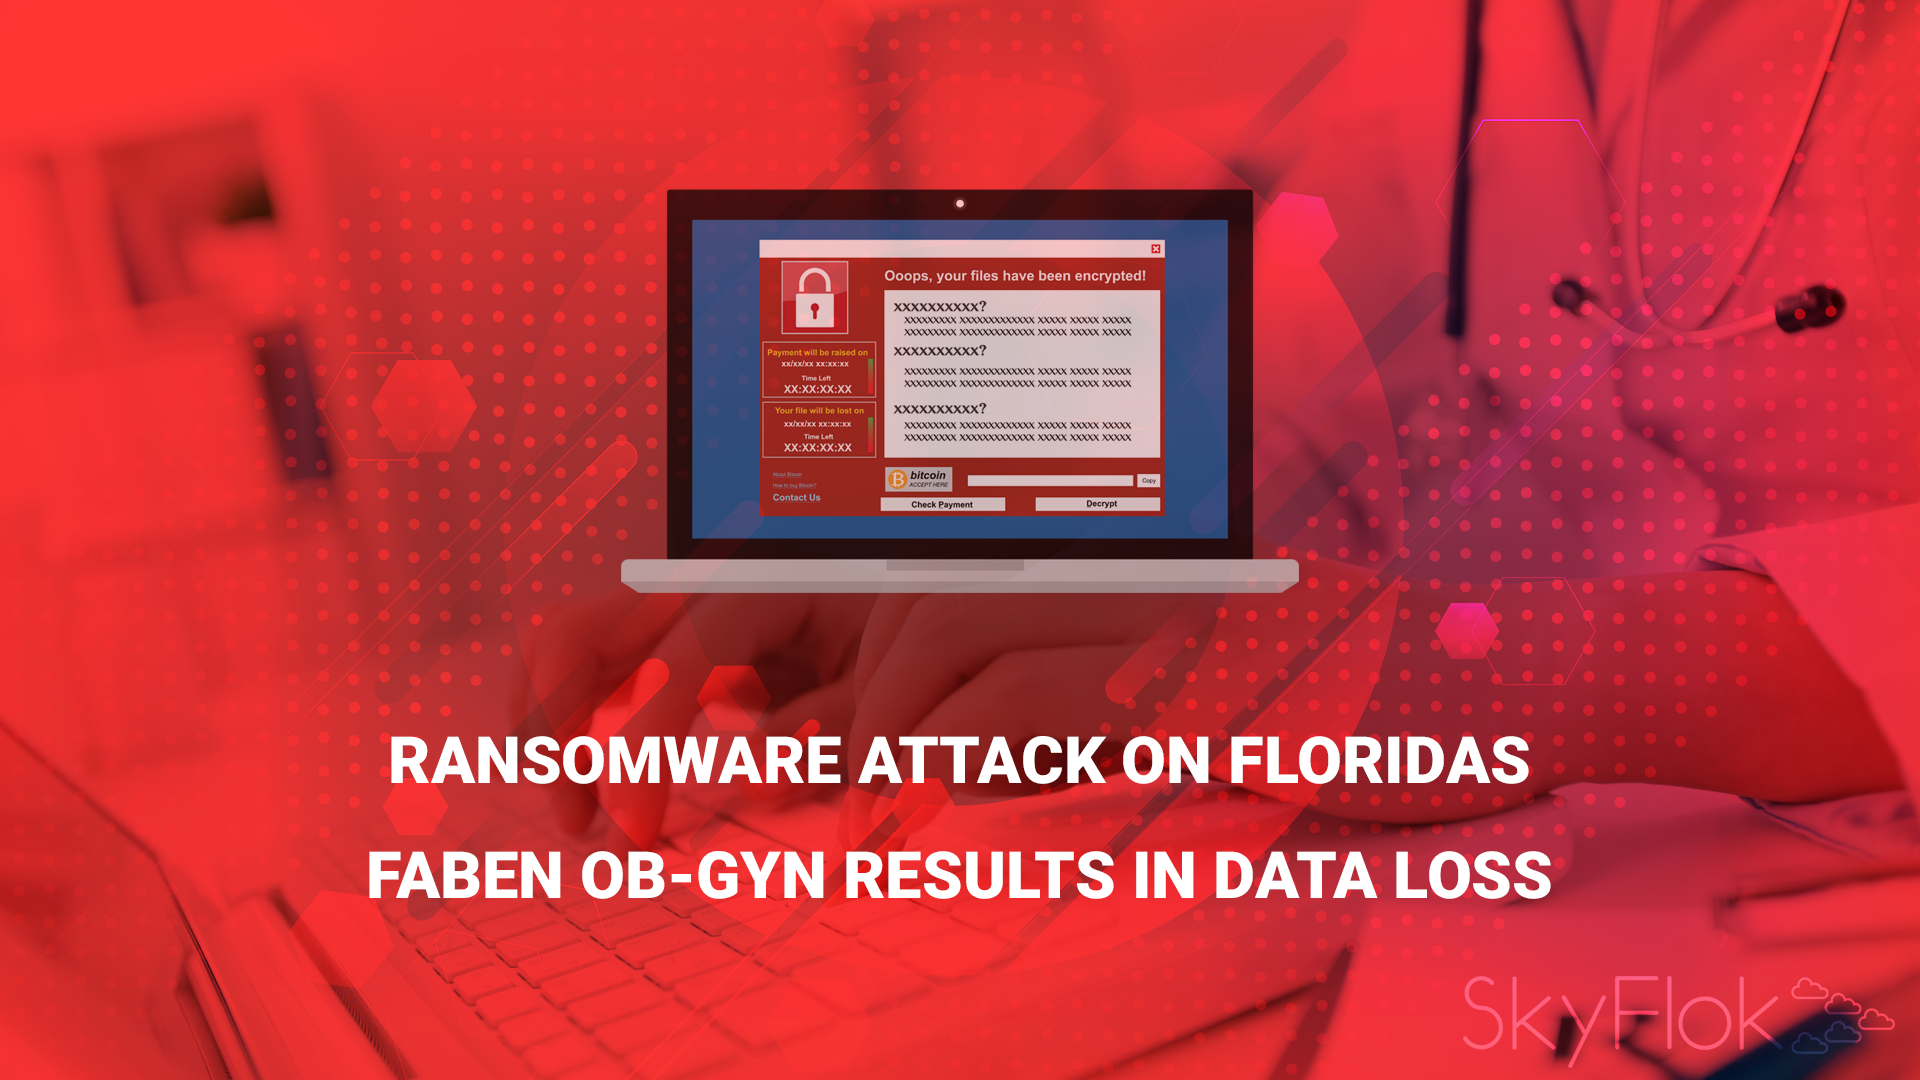 Ransomware Attack on Florida's FABEN OB-GYN Results in Data Loss